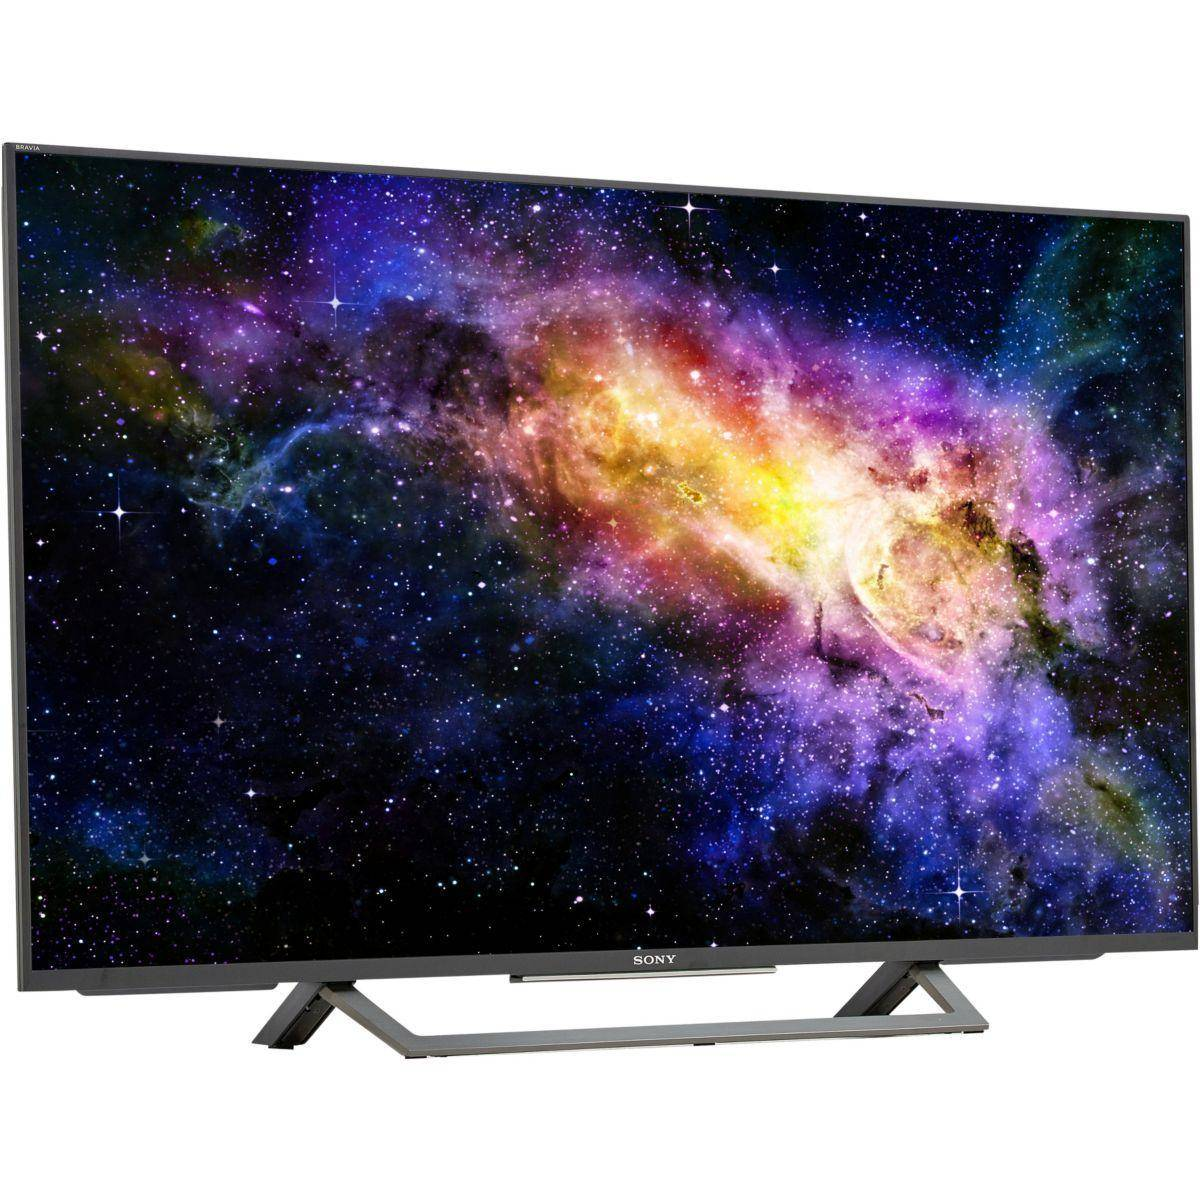 Sony Smart TV LED Full HD 123 cm Sony KDL49WD750